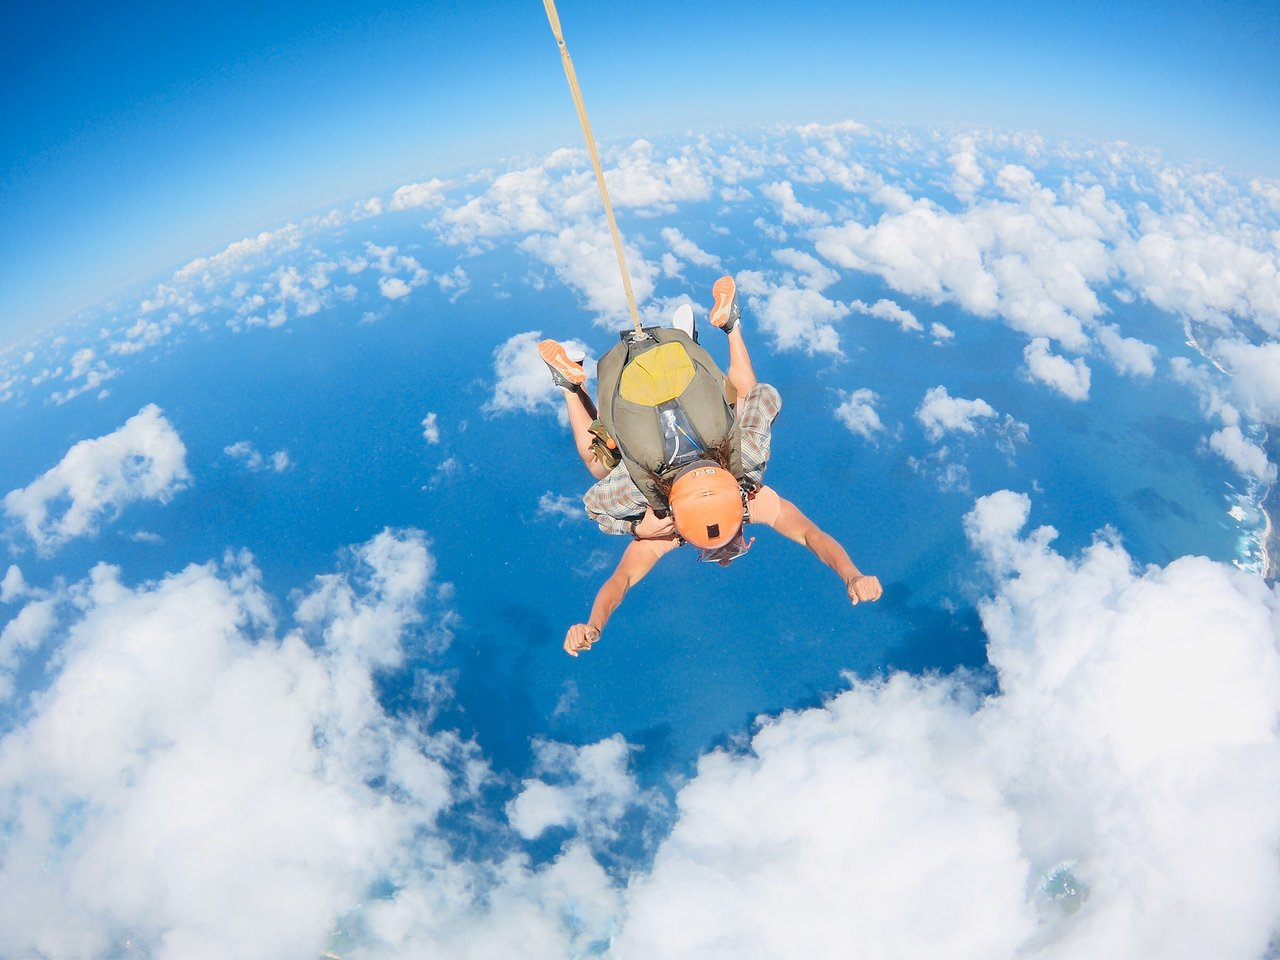 Skydive Hawaii Oahu Updated 2020 All You Need To Know Before You Go With Photos